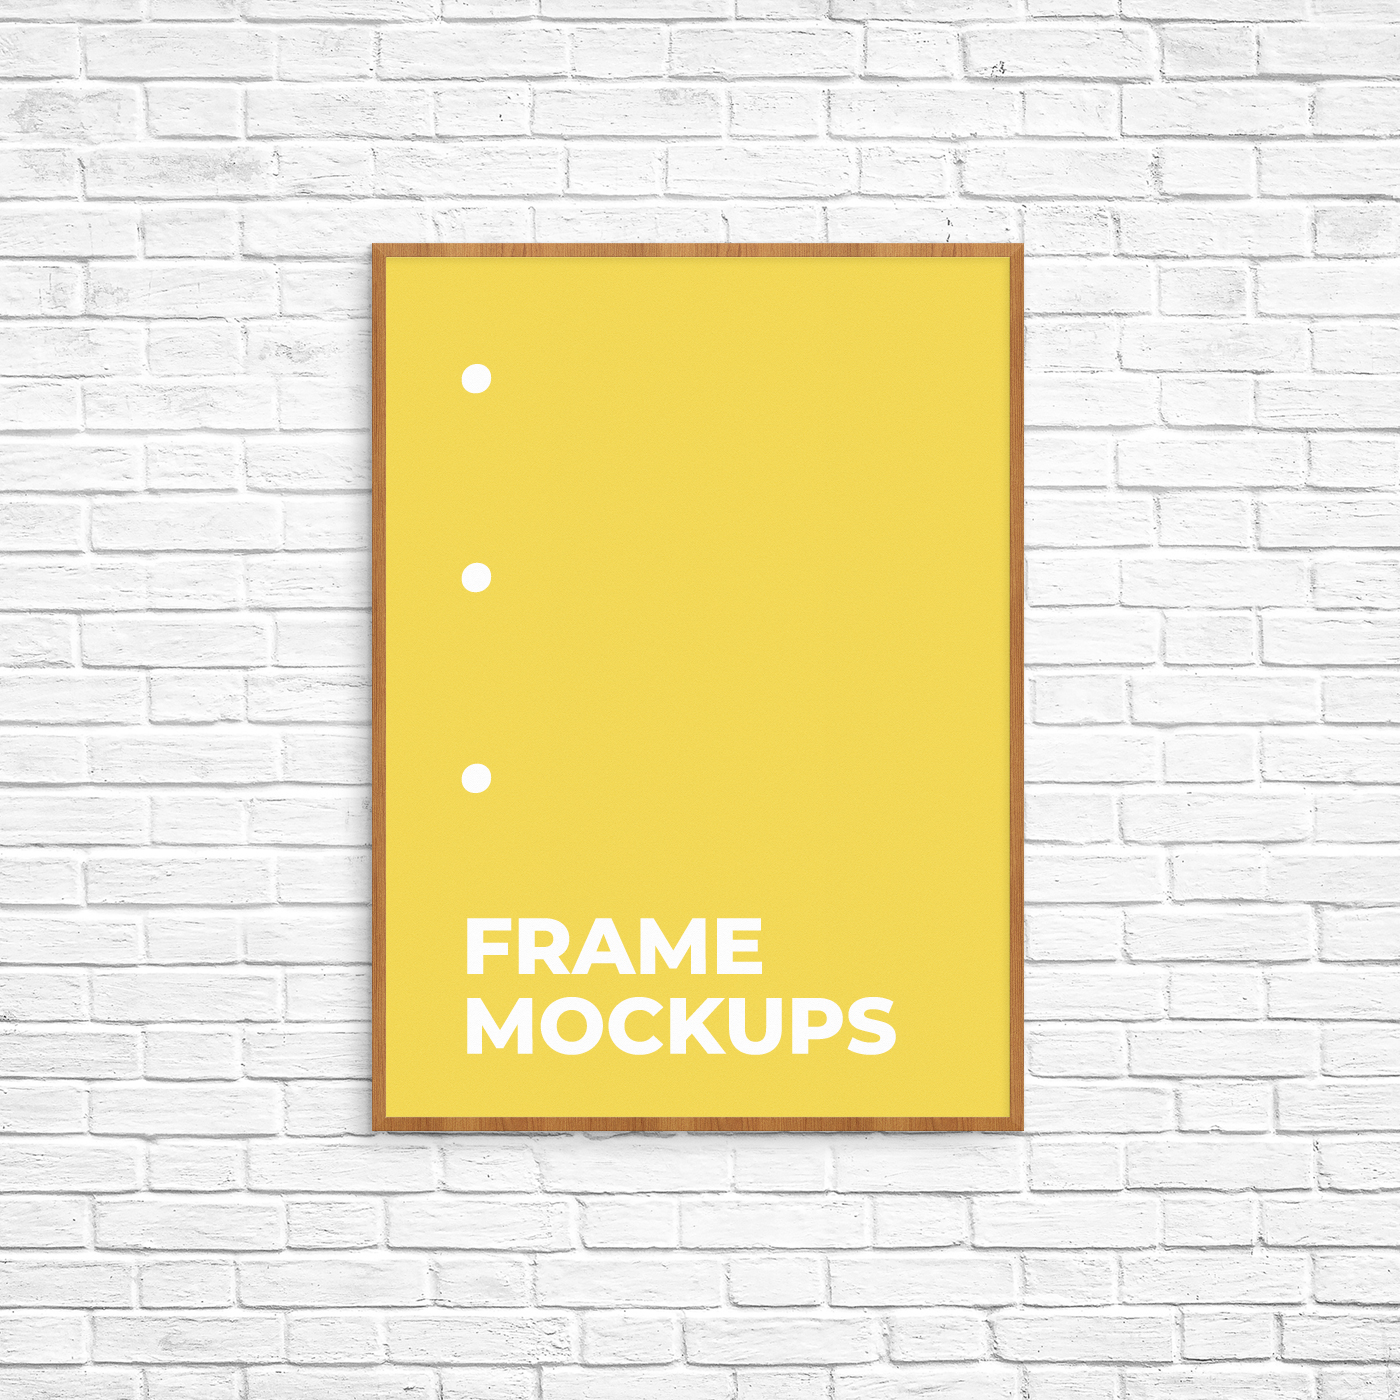 Poster Frame Mockup on a Brick Wall